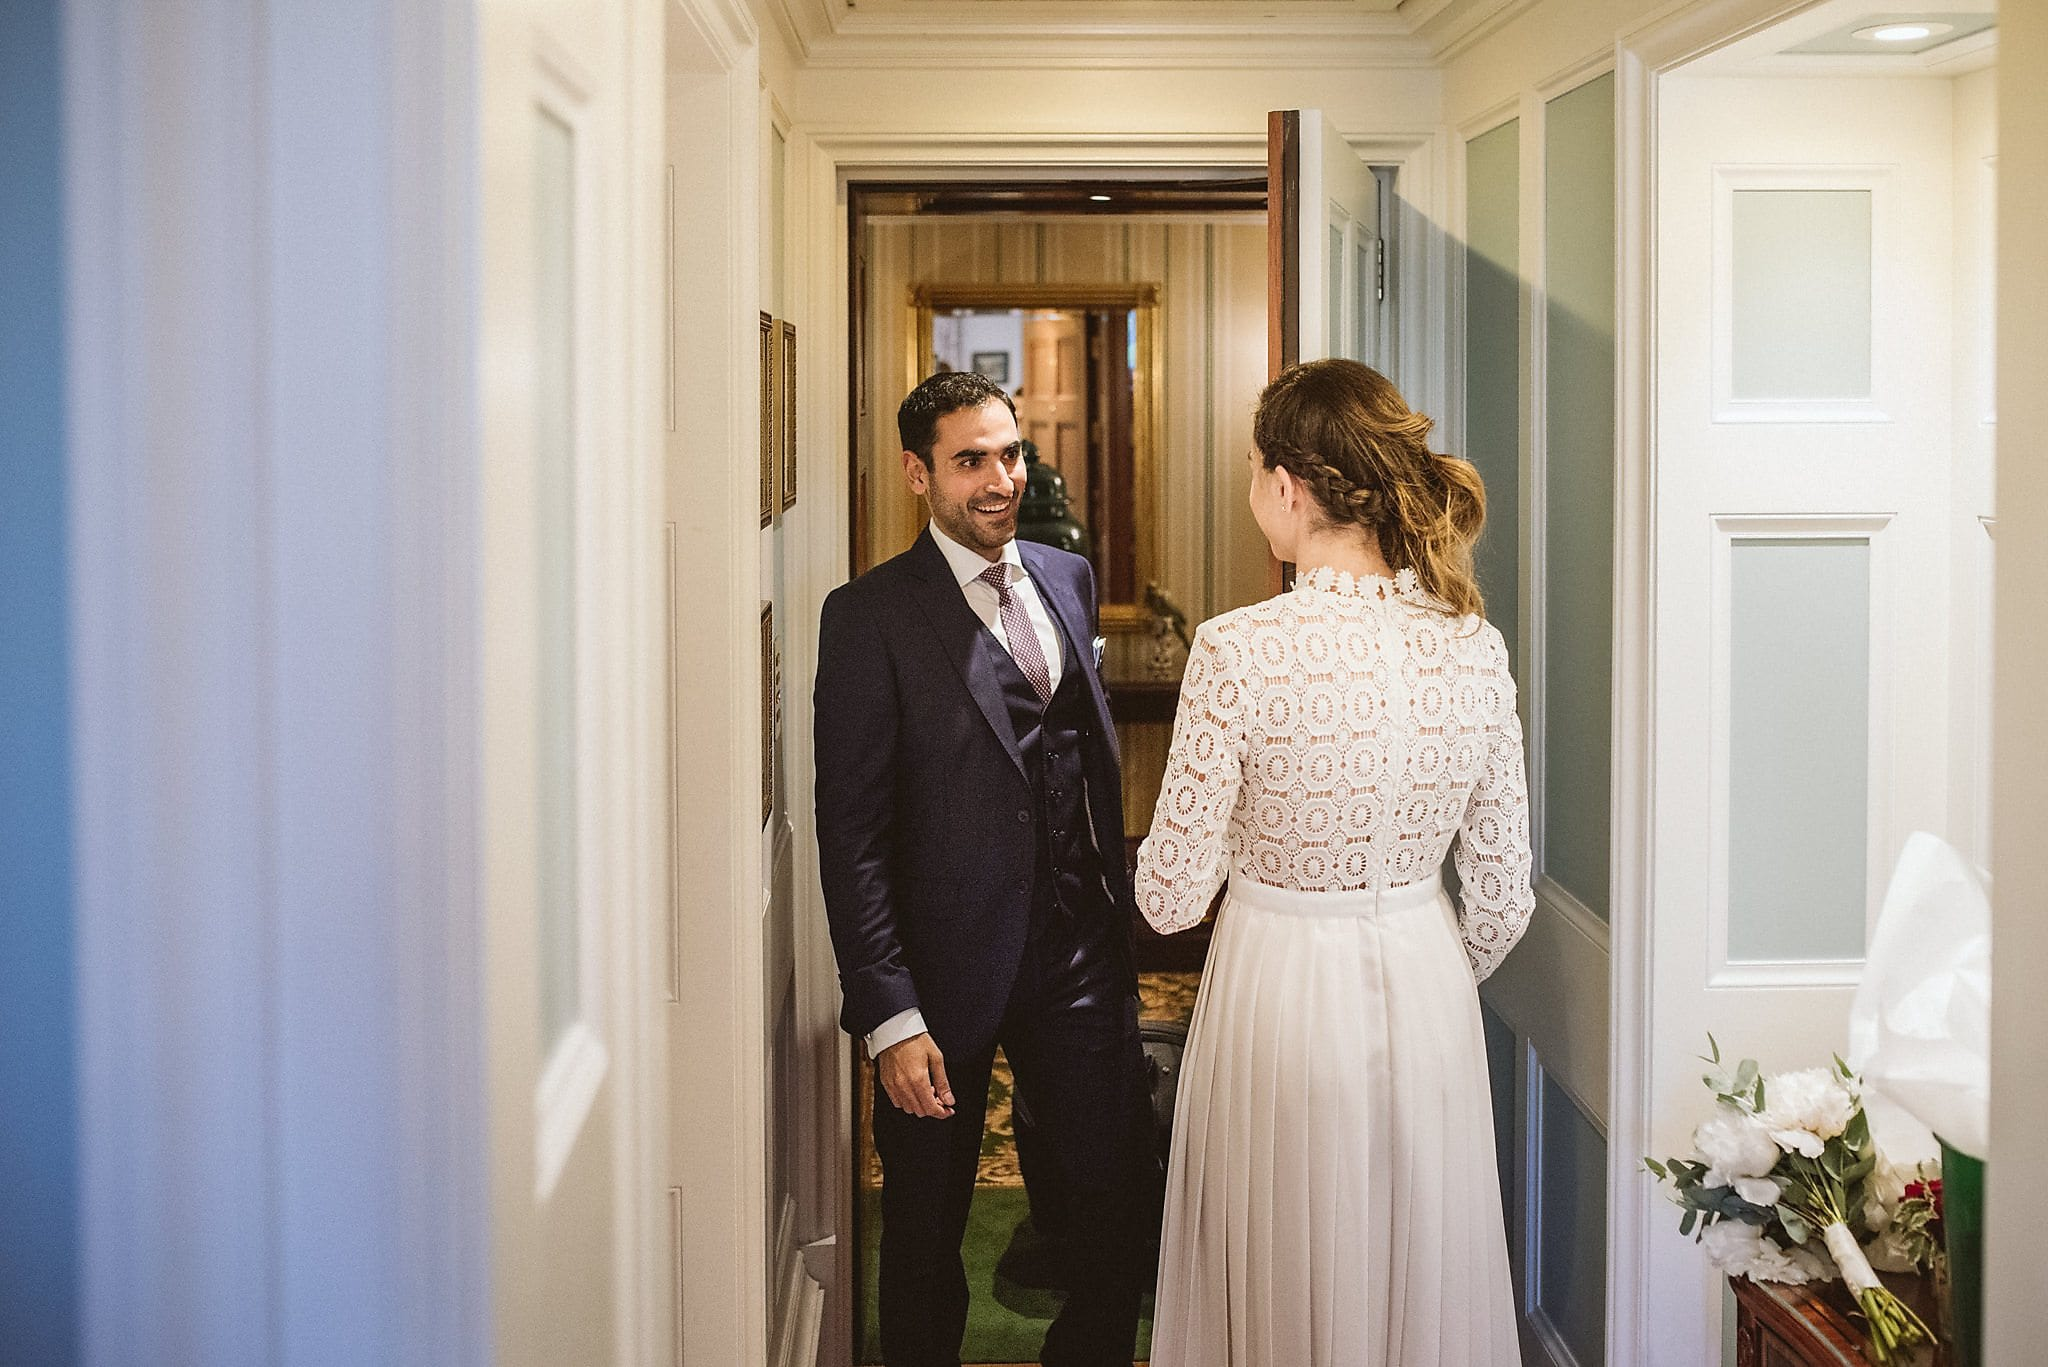 Bride and groom first look at their Lanesborough wedding